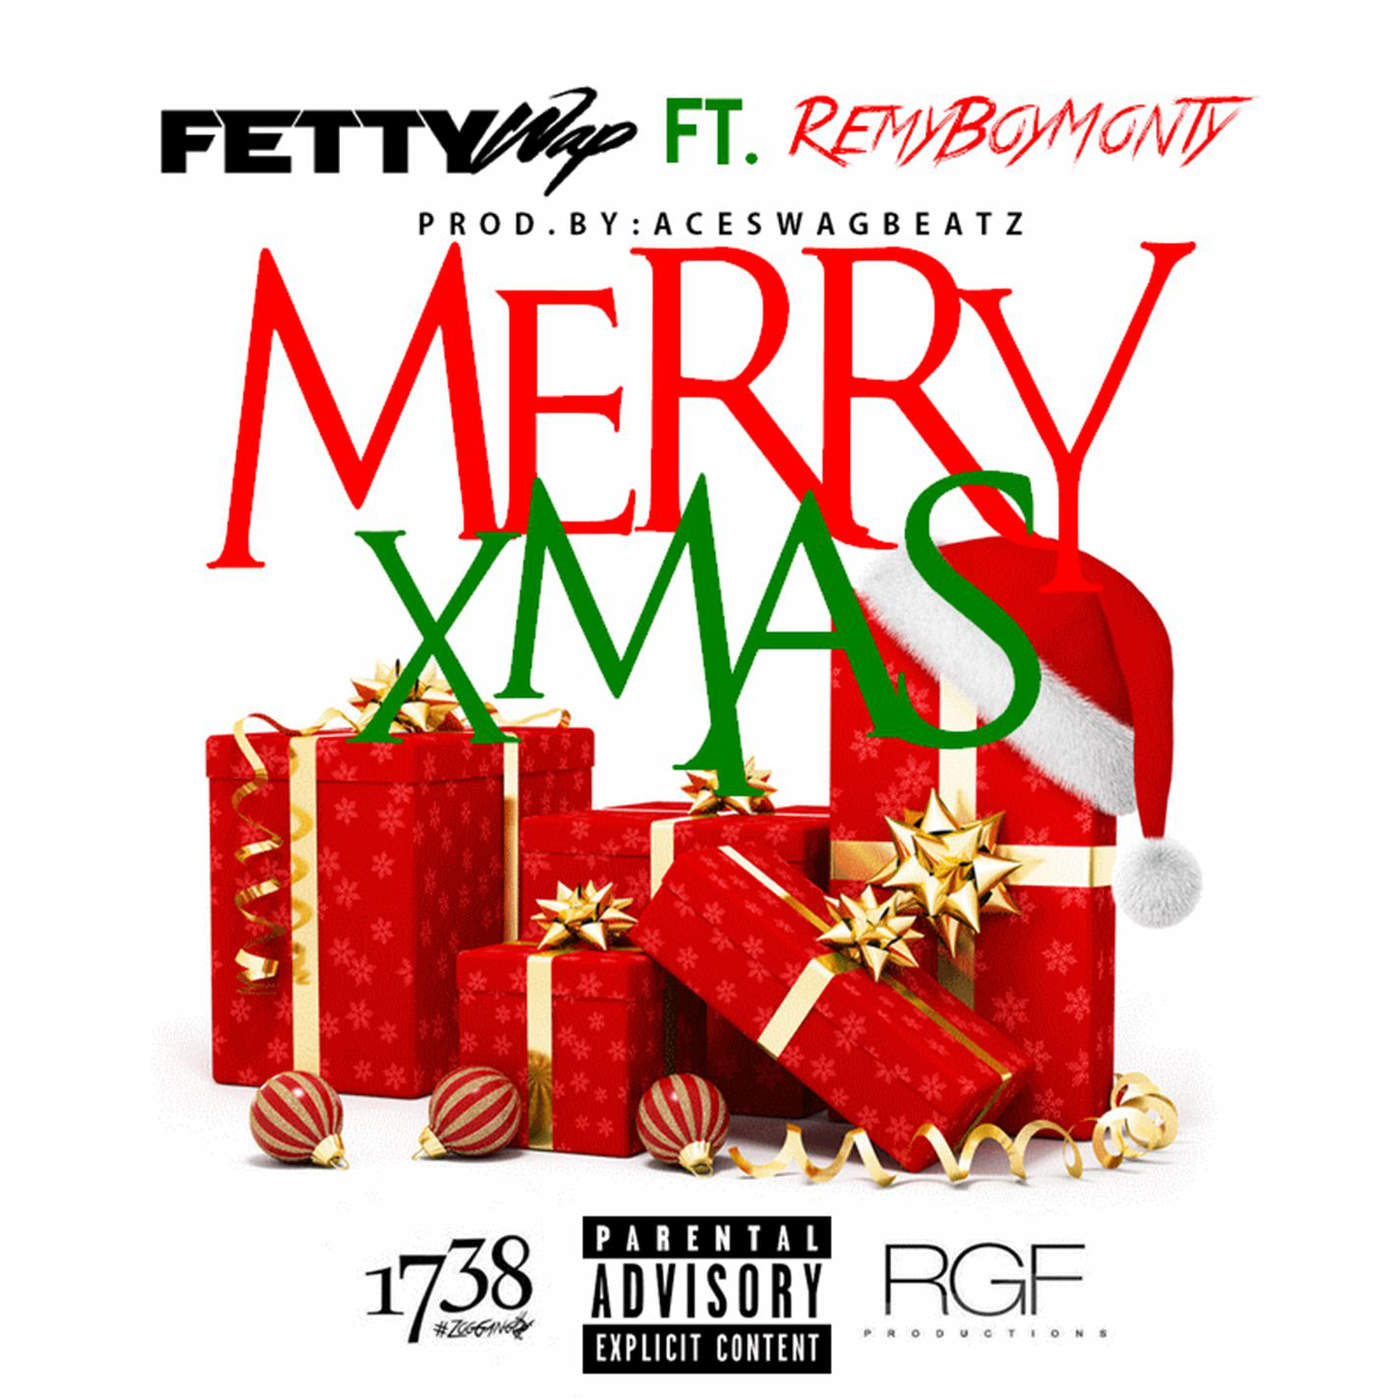 Fetty Wap - Merry Xmas (feat. Monty) - Single Cover